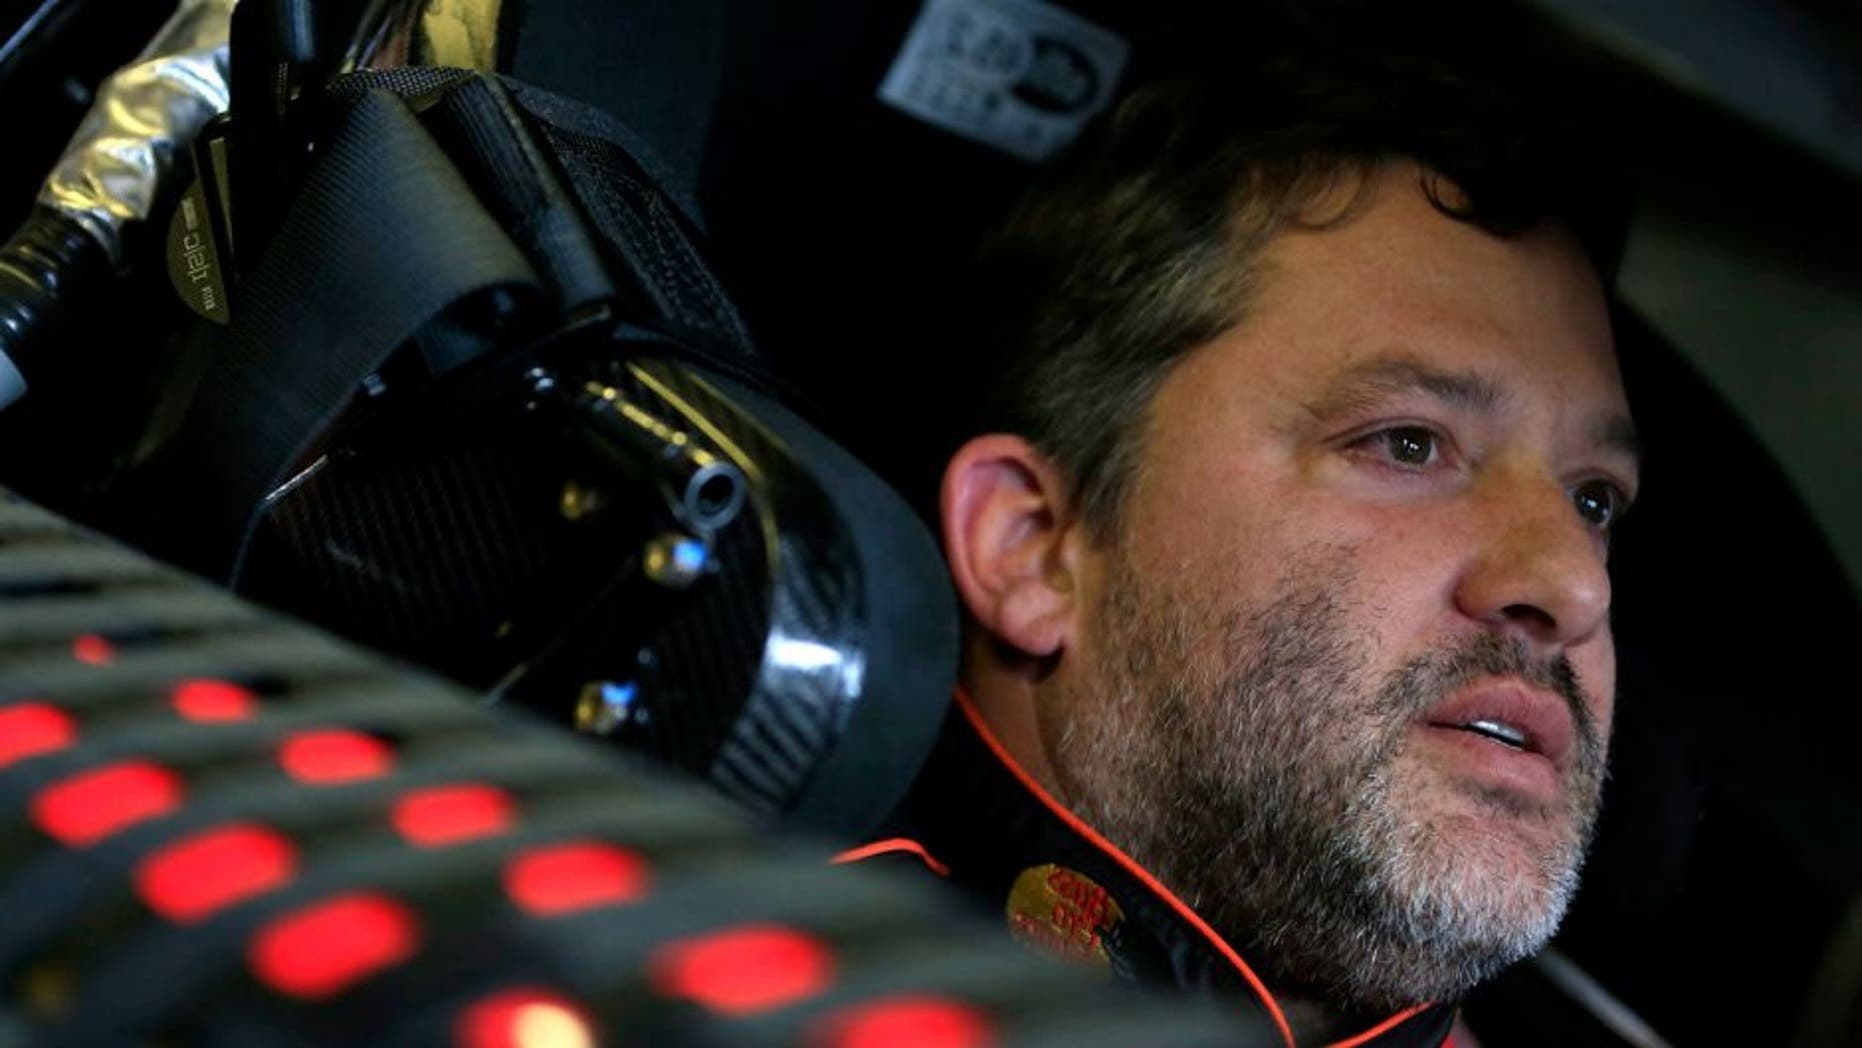 BROOKLYN, MI - JUNE 13: Tony Stewart, driver of the #14 Bass Pro Shops / Mobil 1 Chevrolet, sits in his car during practice for the NASCAR Sprint Cup Series Quicken Loans 400 at Michigan International Speedway on June 13, 2015 in Brooklyn, Michigan. (Photo by Chris Trotman/Getty Images)